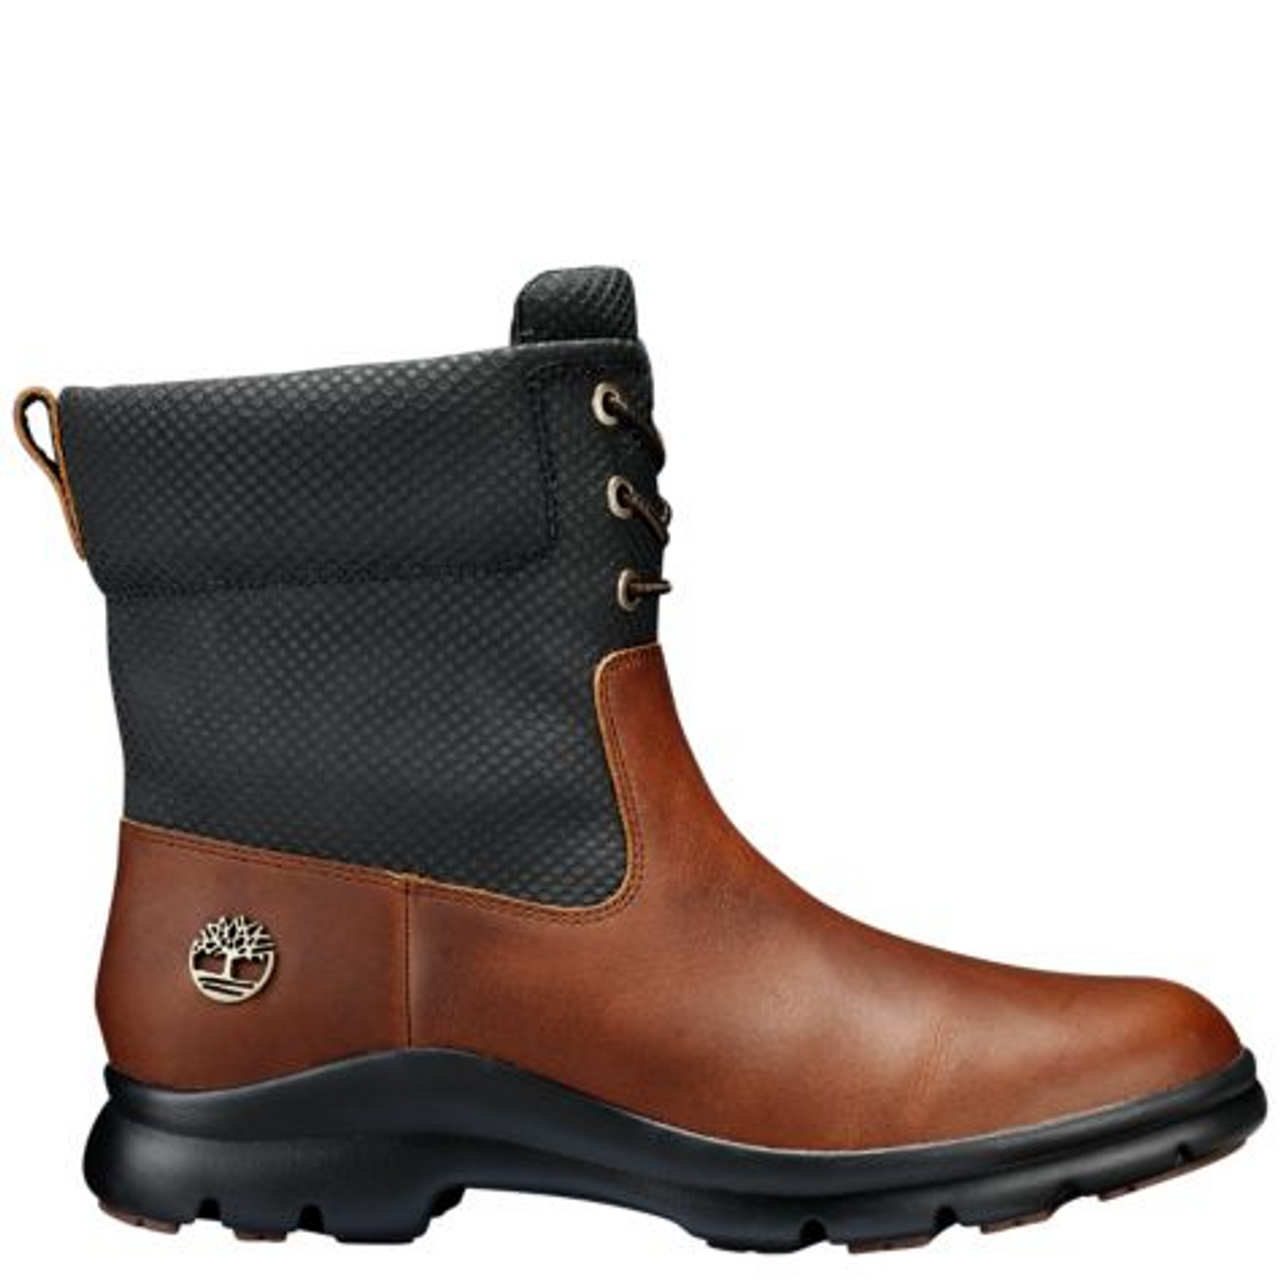 Turain Waterproof Ankle Boots